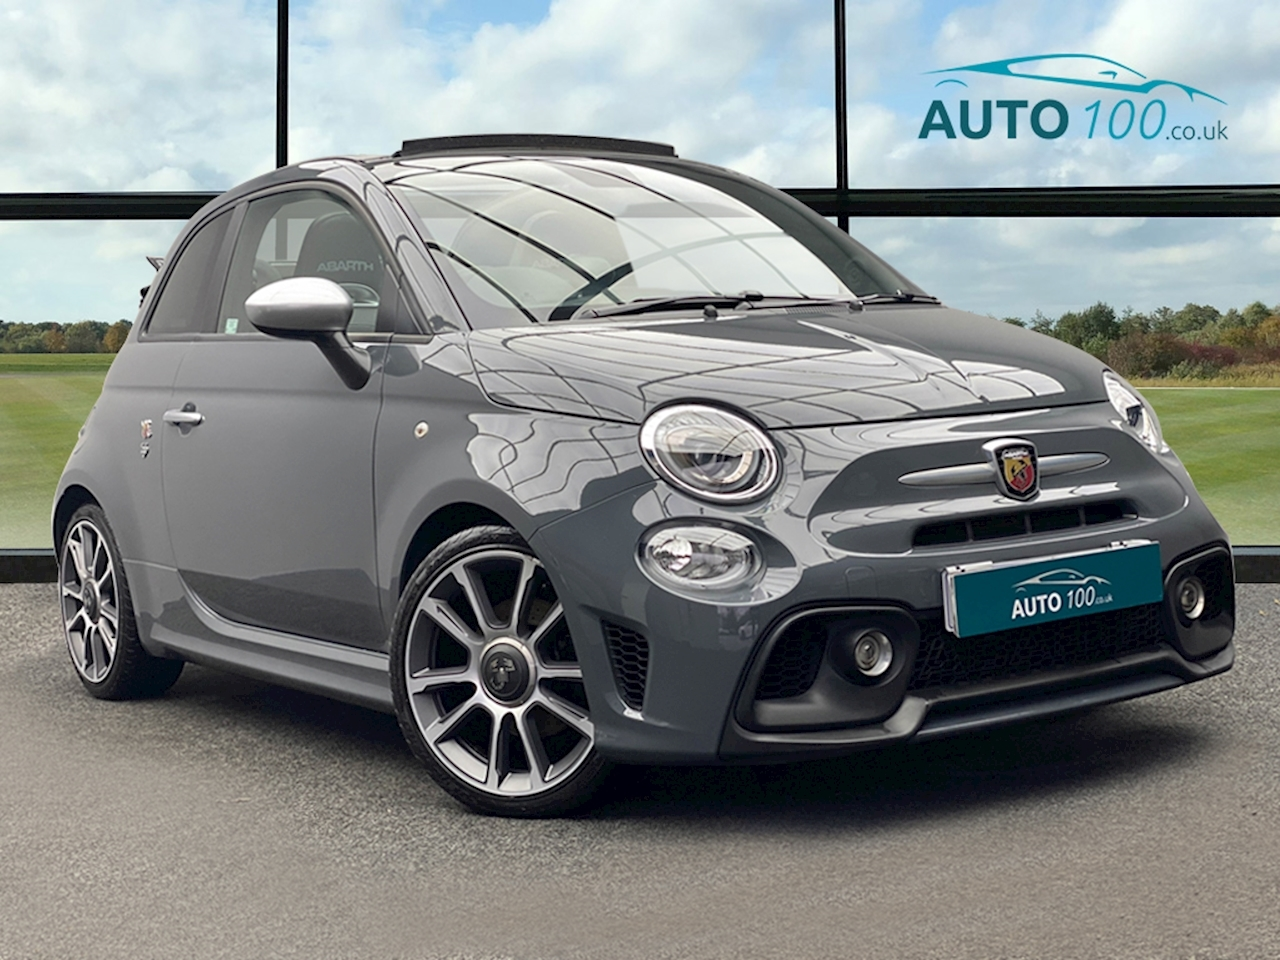 Abarth 595 595 Turismo 1.4 Tjet 165hp Convertible Convertible 1.4 Manual Petrol